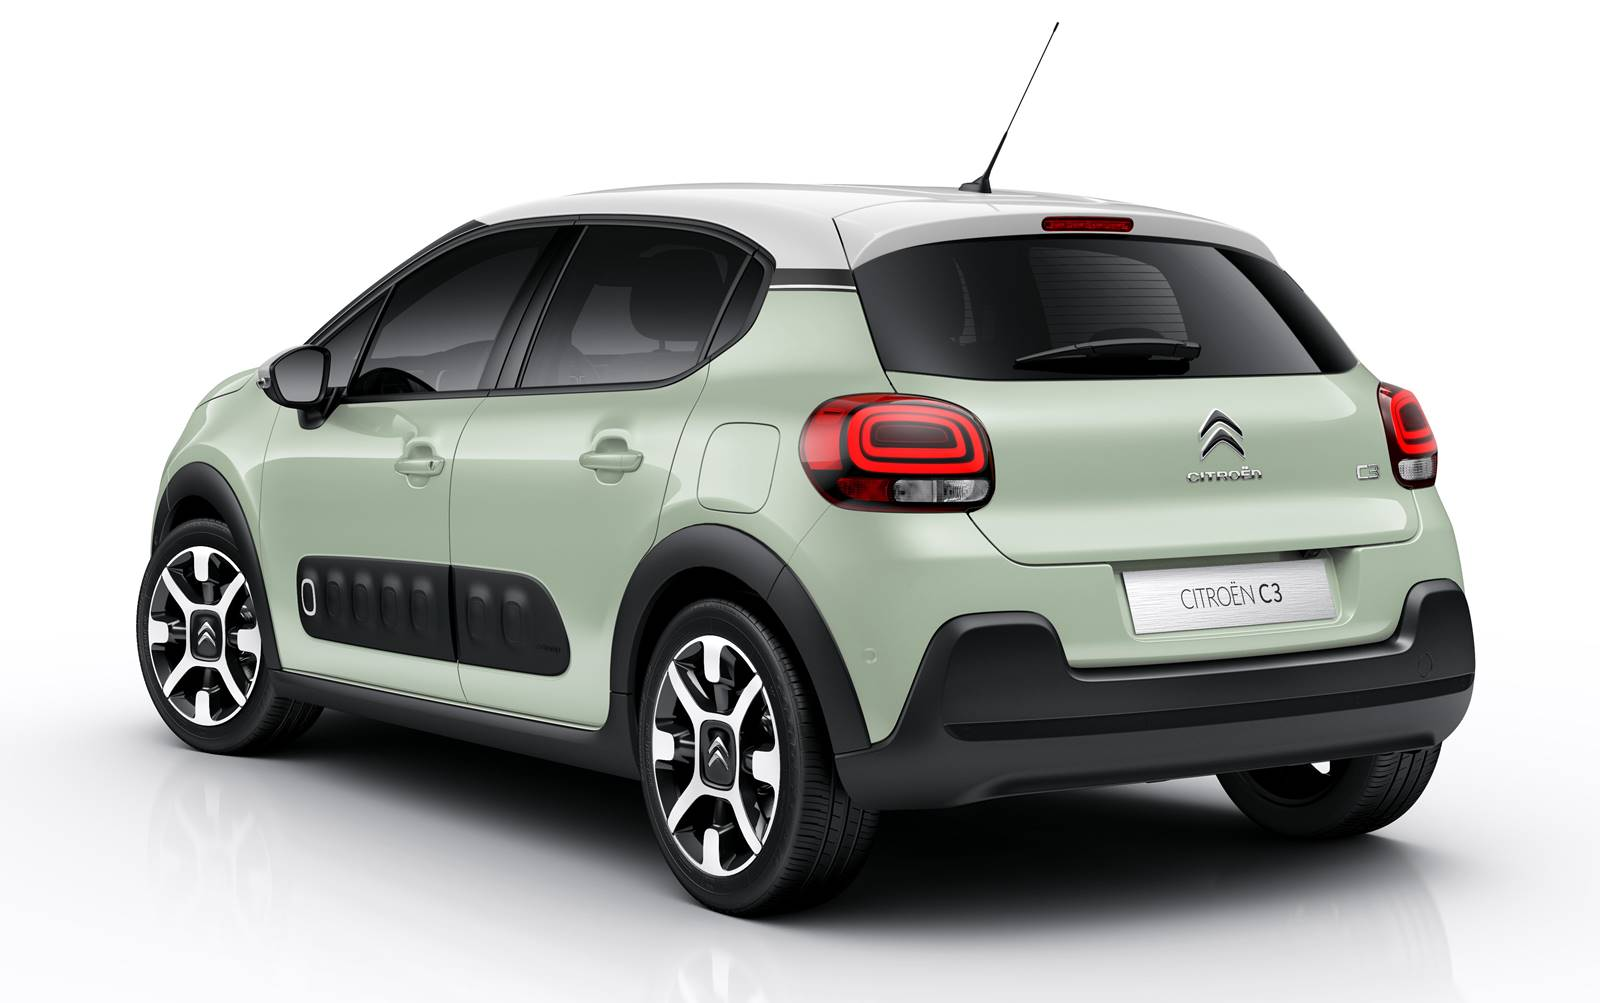 novo citroen c3 2017 fotos oficiais do lan amento fran a car blog br. Black Bedroom Furniture Sets. Home Design Ideas